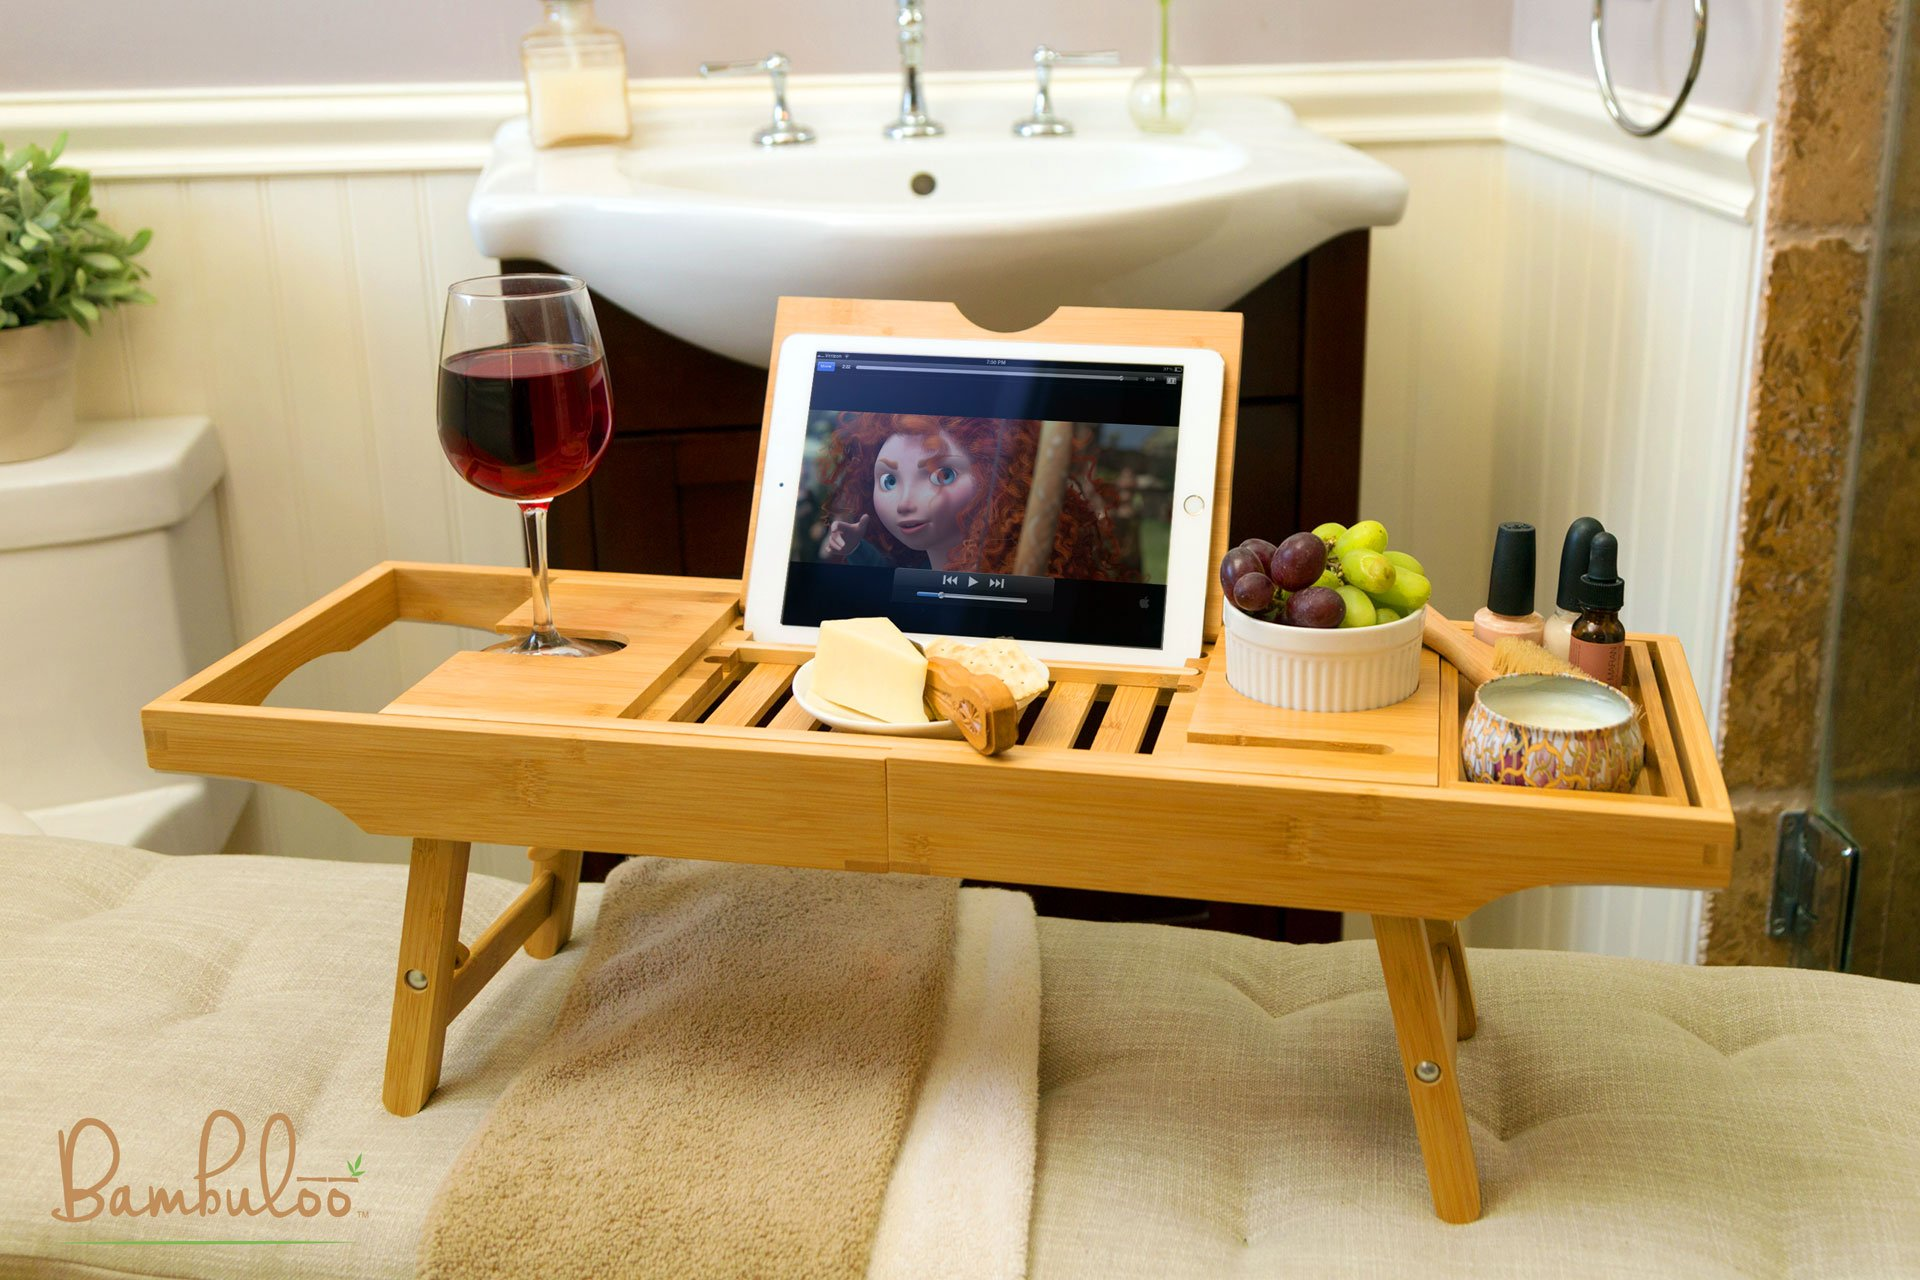 Bathtub Caddy and Bed Tray Combo - Premium Bamboo Wood with 2 Lavender Bath Bombs - Folding Legs/Fully Adjustable - Mold Resistant - Phone Tablet and Wine Holders for The Finest Home Spa Experience by Bambuloo (Image #4)